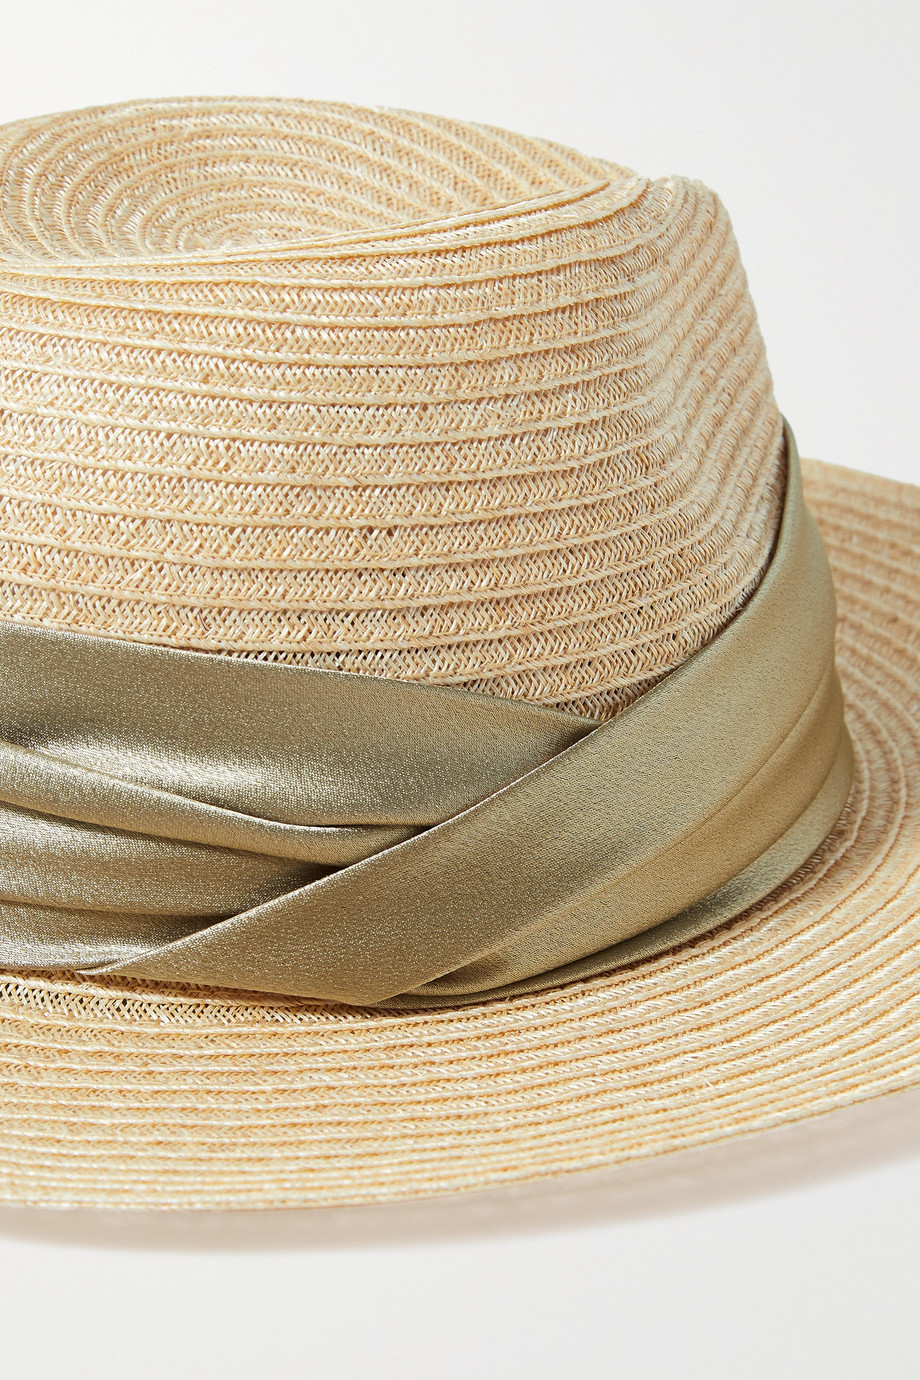 EUGENIA KIM Courtney satin-trimmed hemp-blend hat